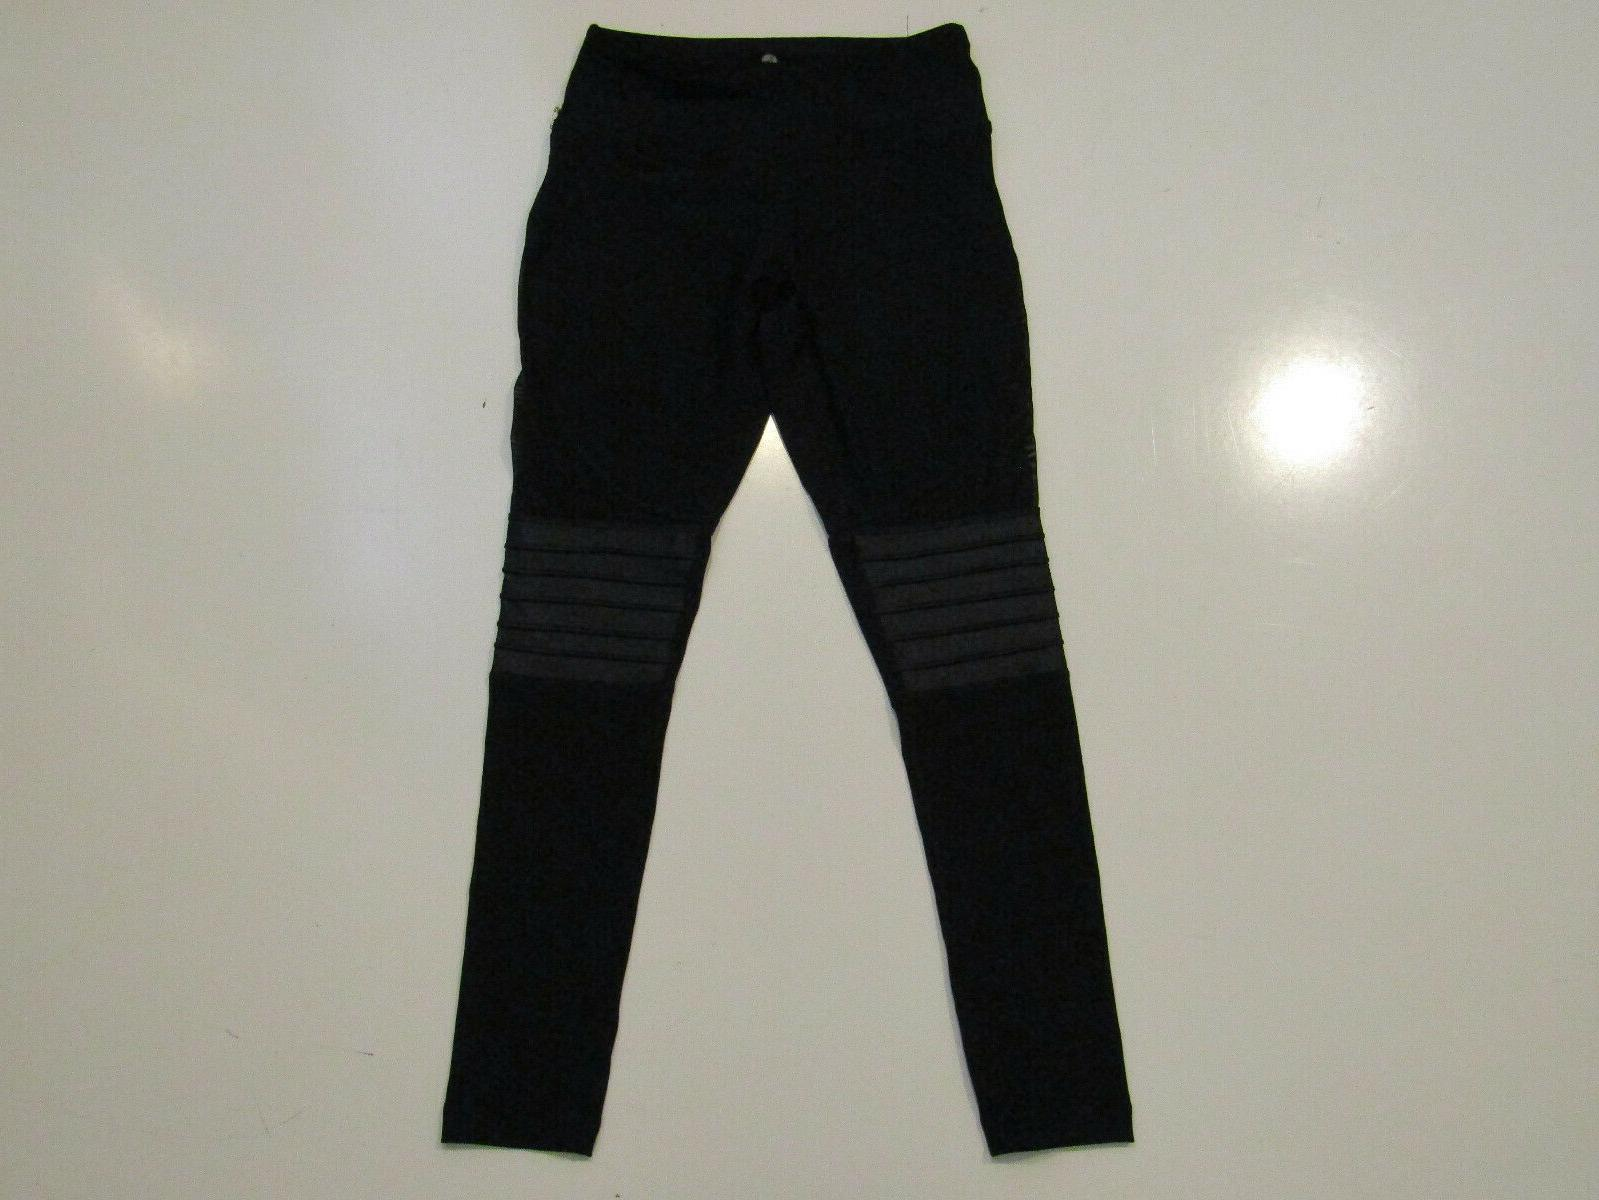 womens black active exercise running pants mesh